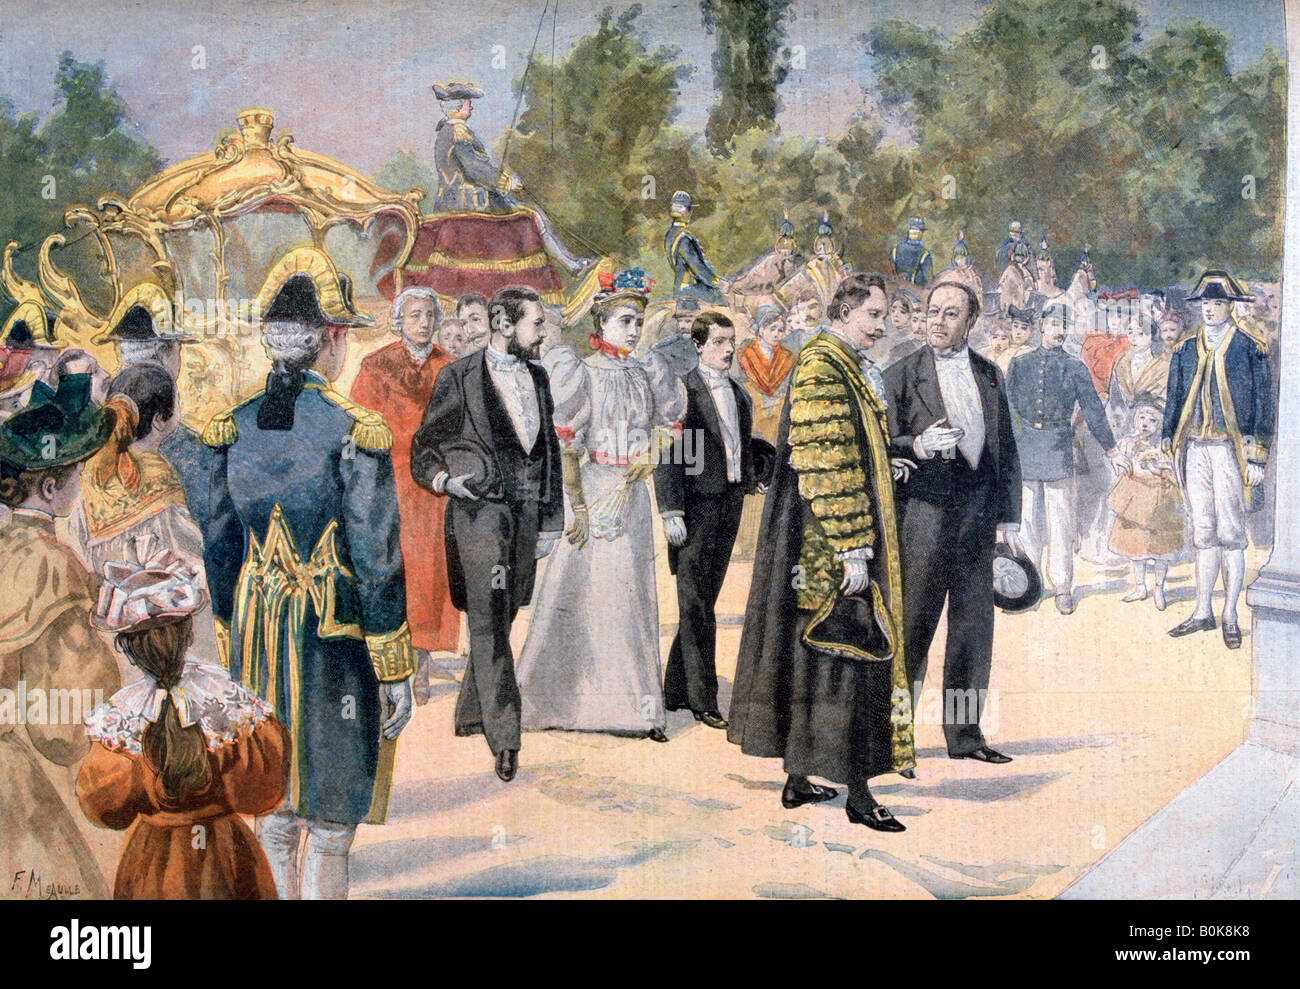 The Lord Mayor of London visiting Bordeaux, France, 1895. Artist: F Meaulle - Stock Image